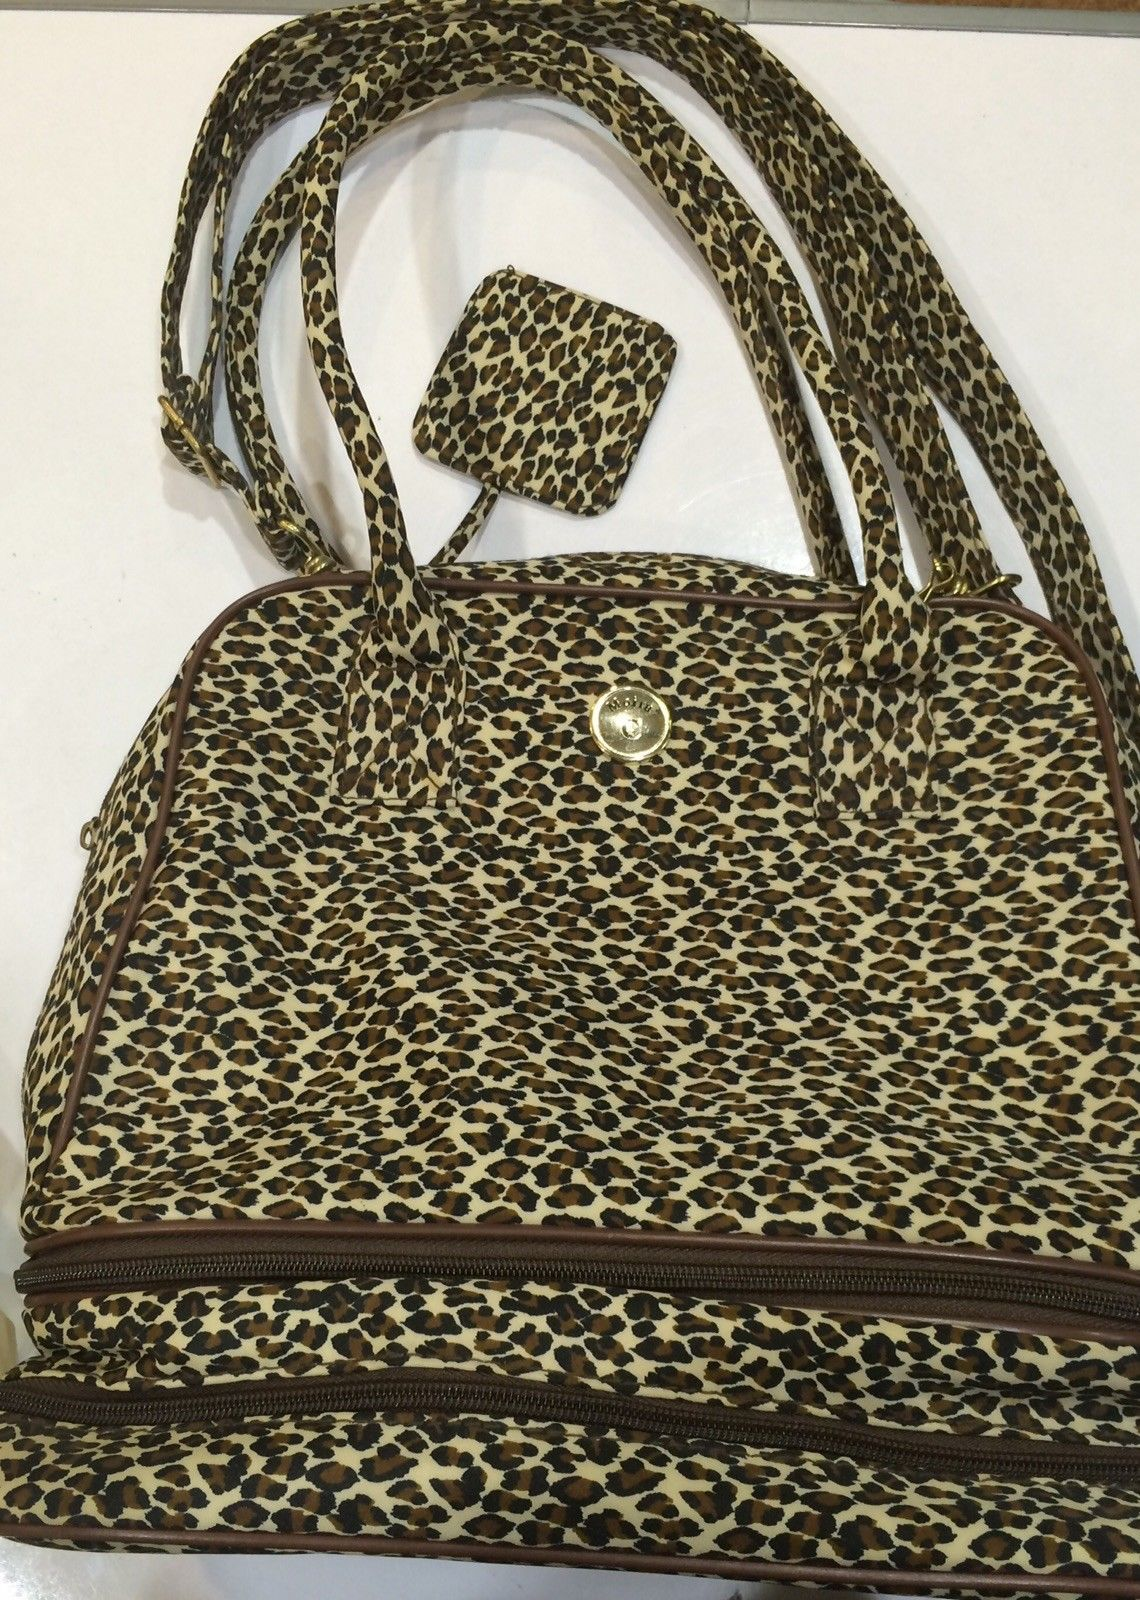 Moira C Leopard Print Tote Bag With Detachable Base For Shoes Umbrella Ebay